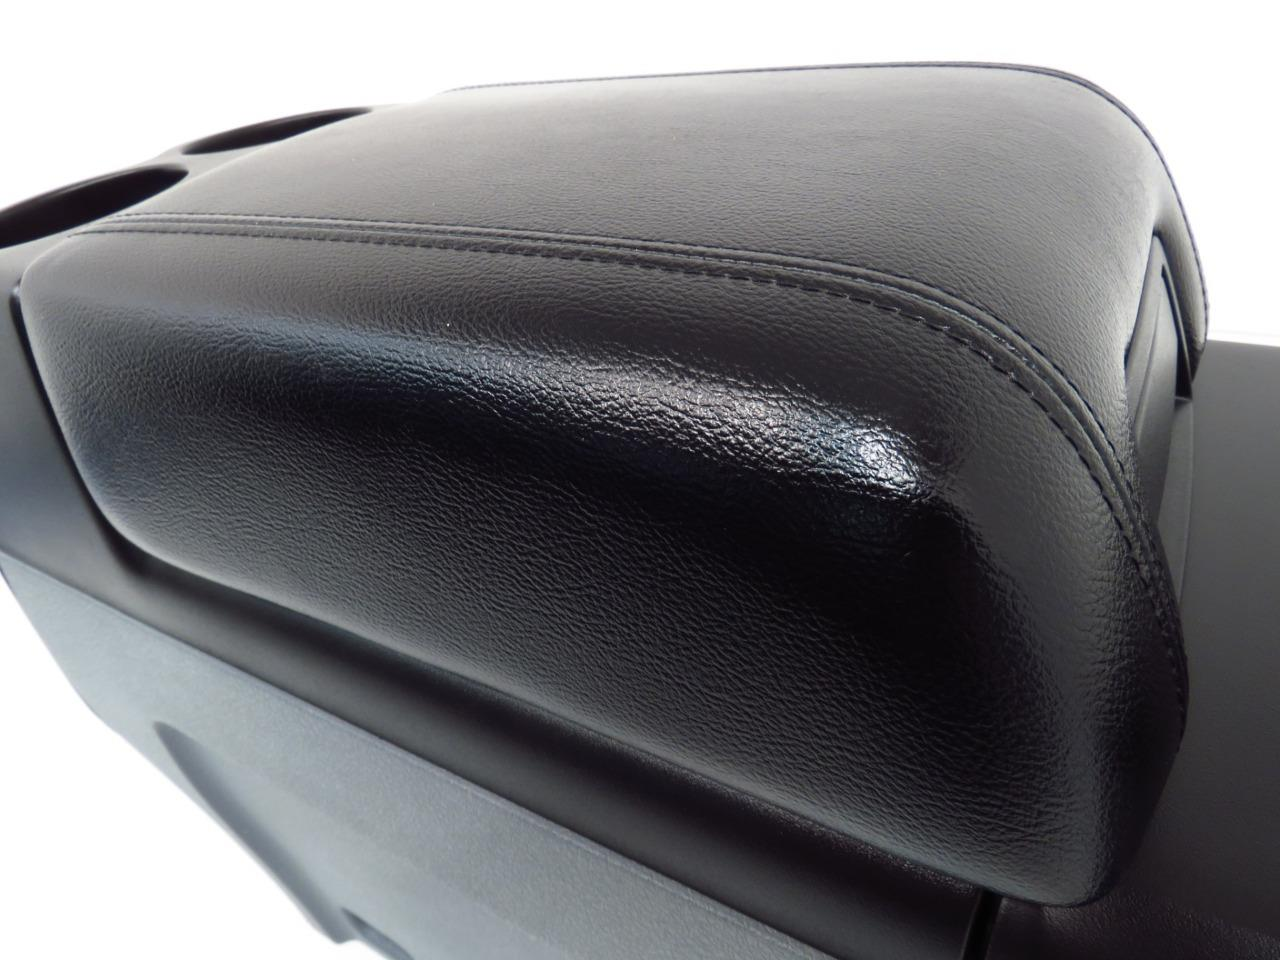 console f150 center ford 150 2009 lid replacement leather